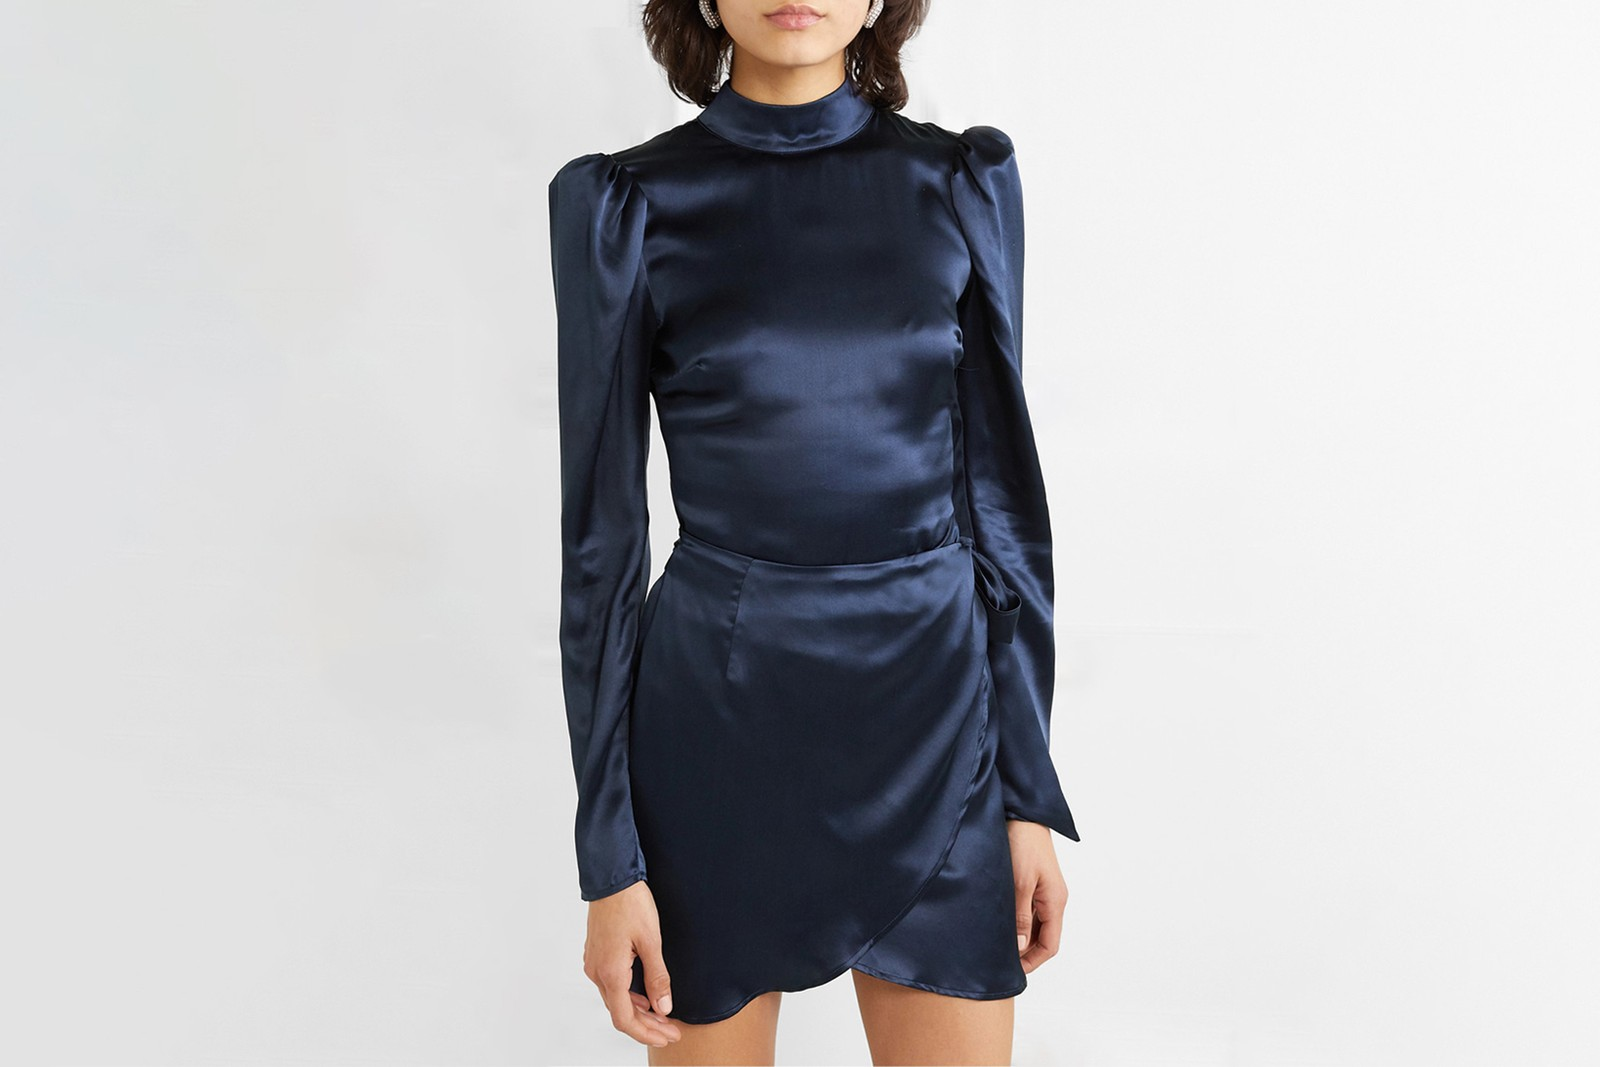 best affordable cocktail party dresses holiday christmas new years versace rotate ganni glitter sparkle blue purple black